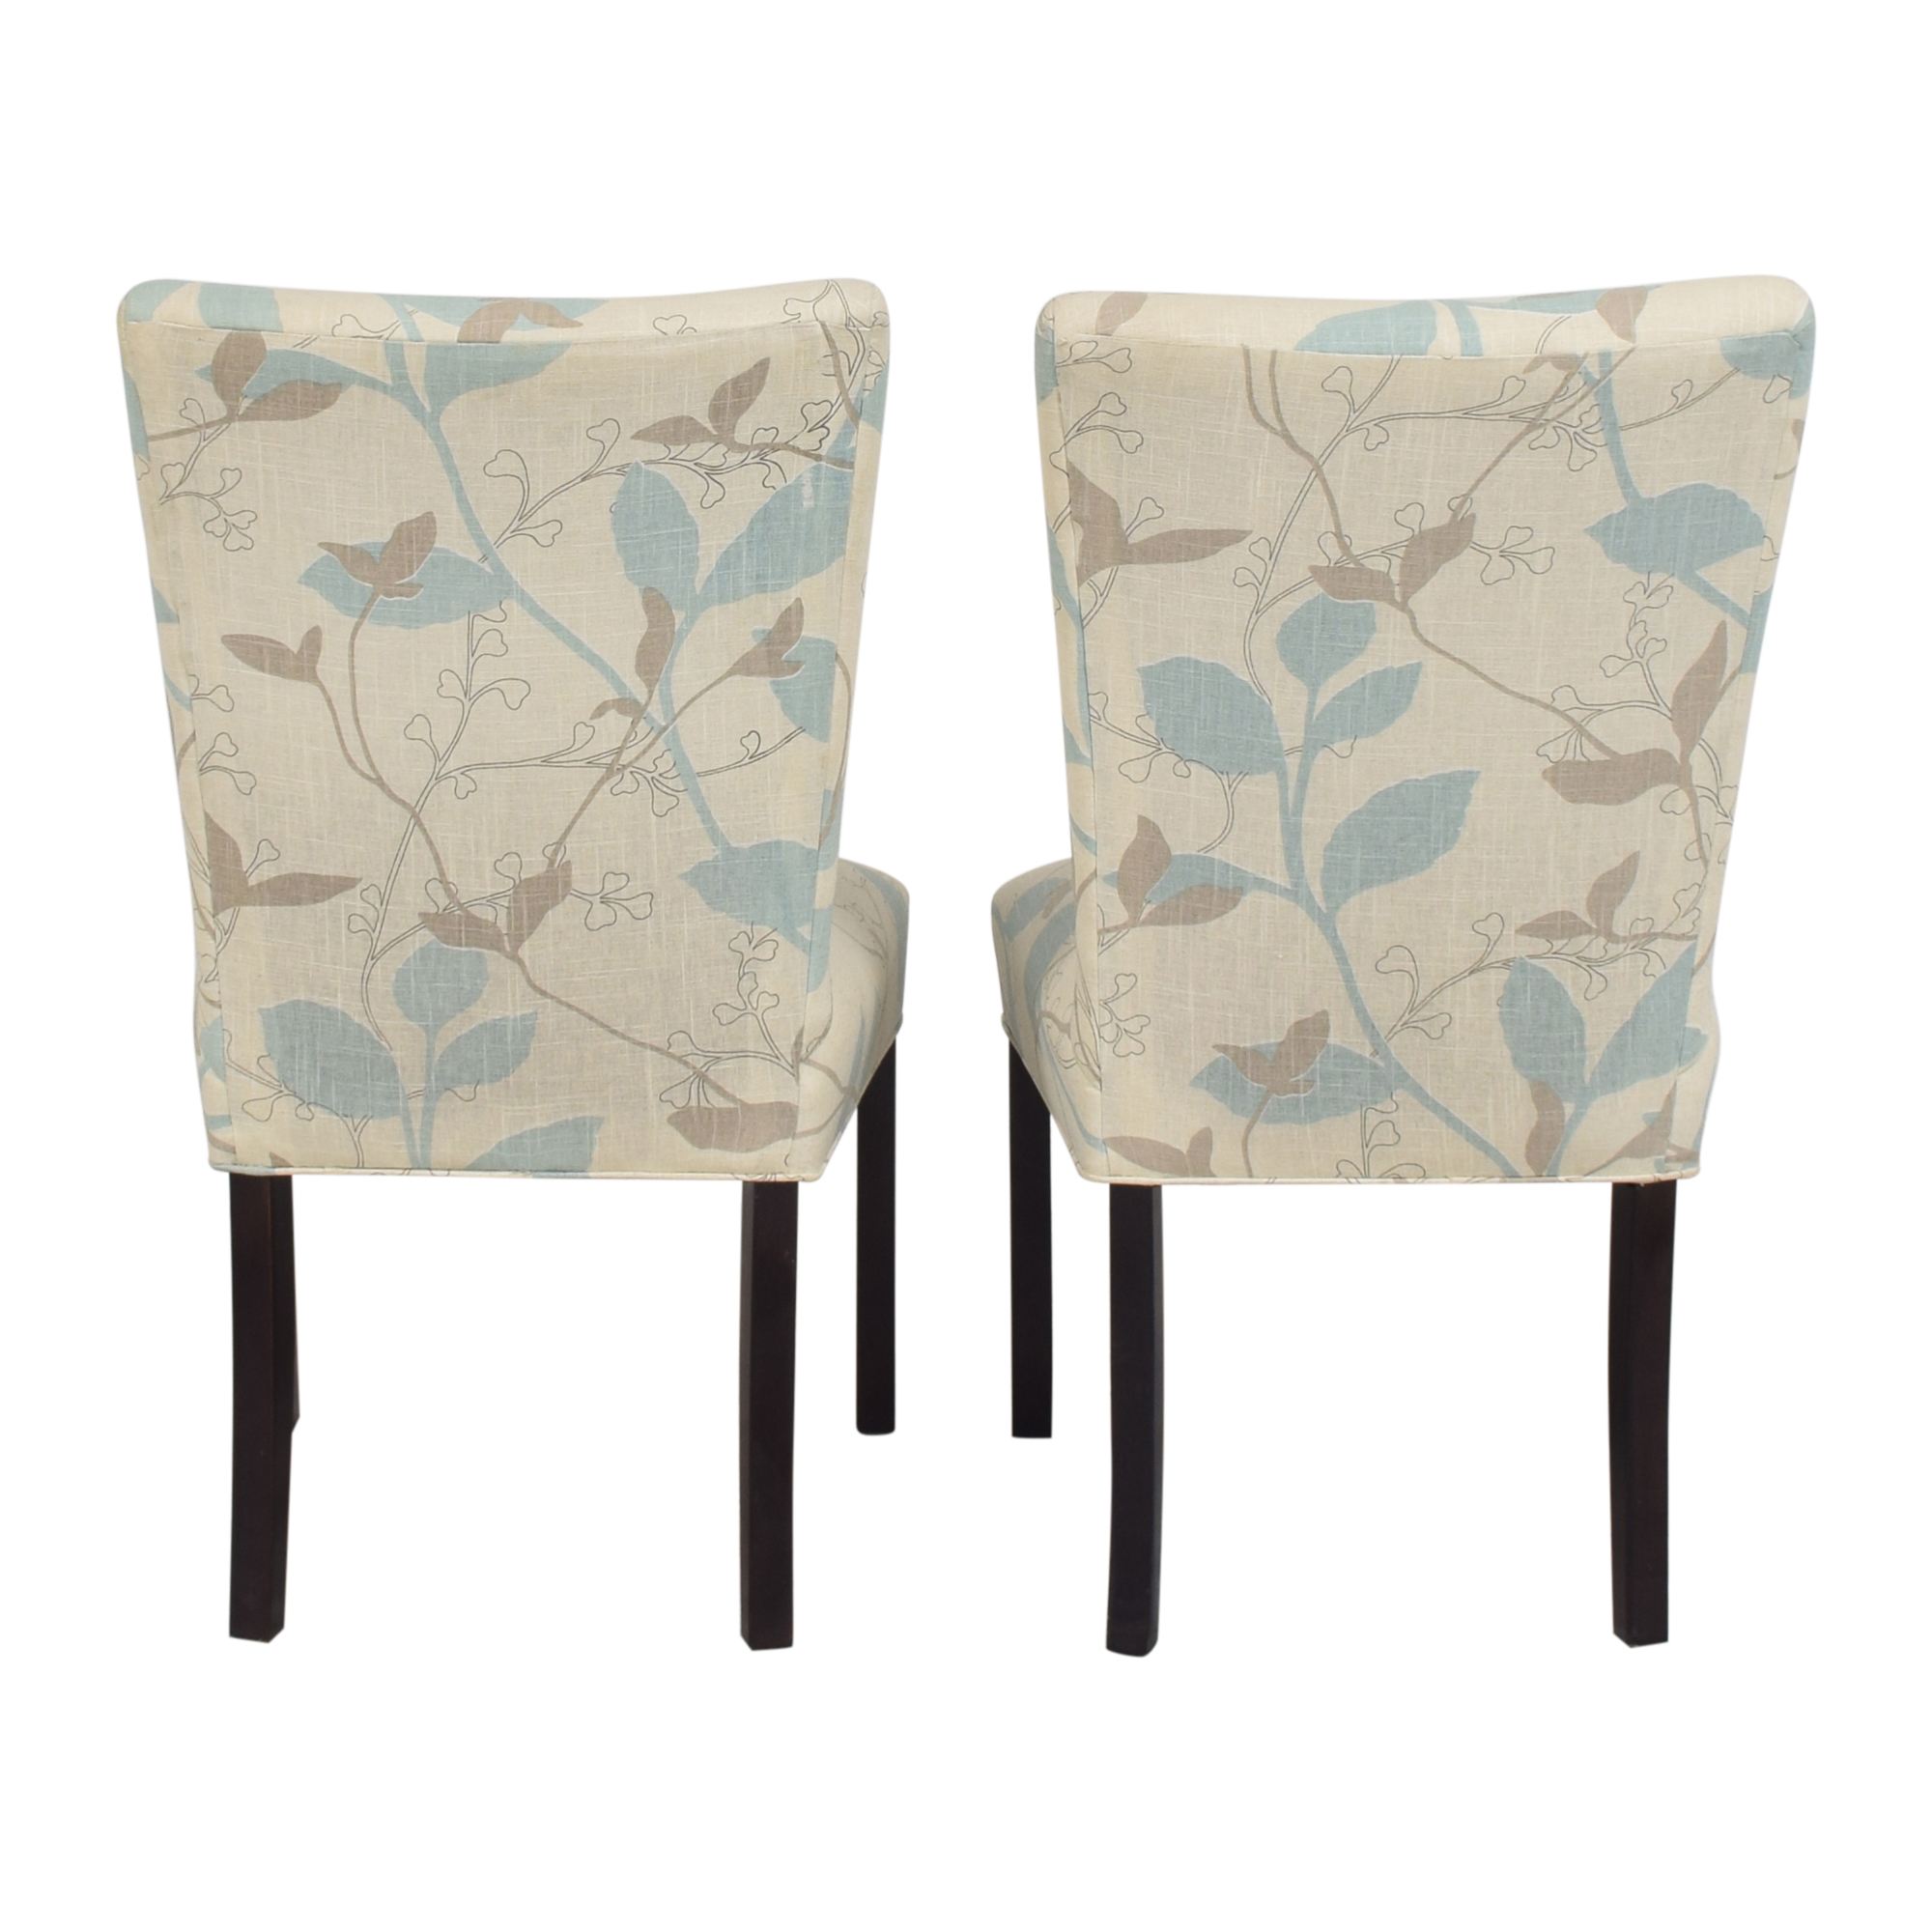 Wayfair Wayfair Sole Designs Upholstered Dining Chairs dimensions